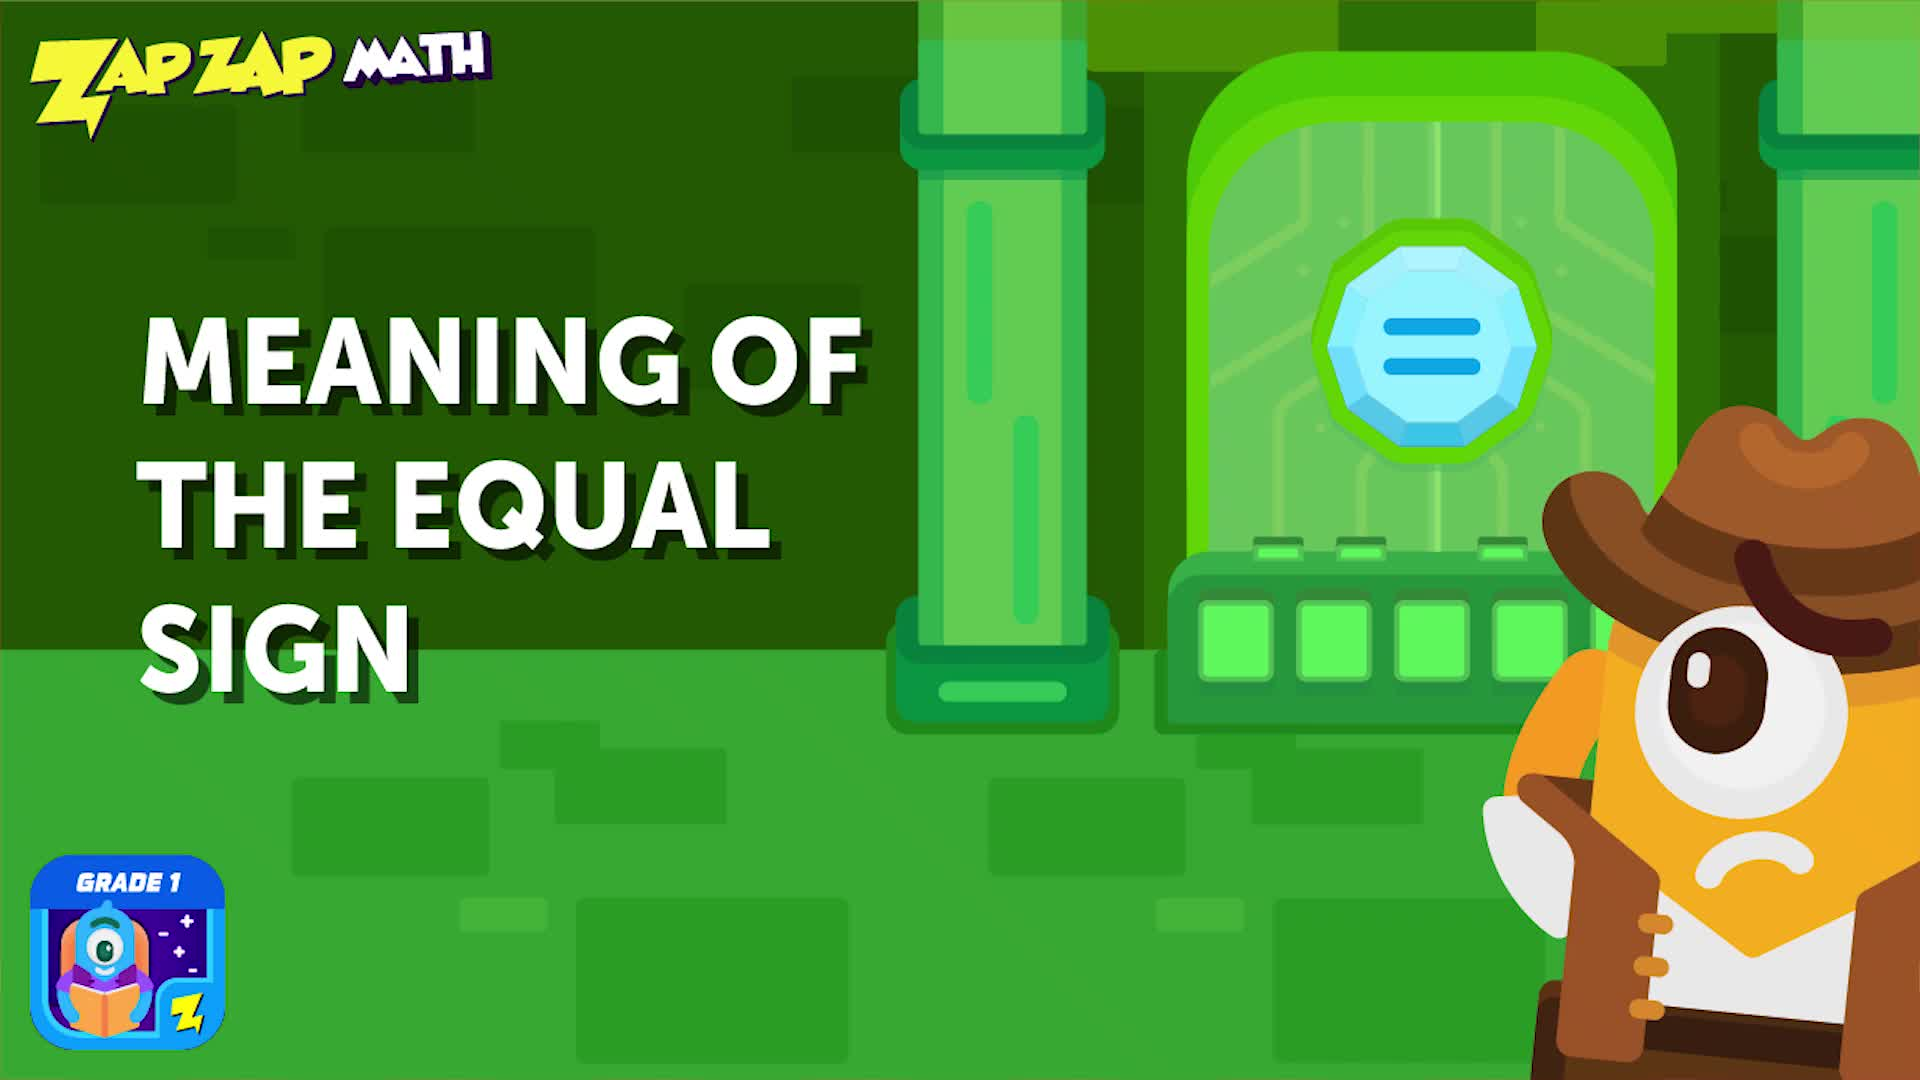 Meaning of the Equal Sign